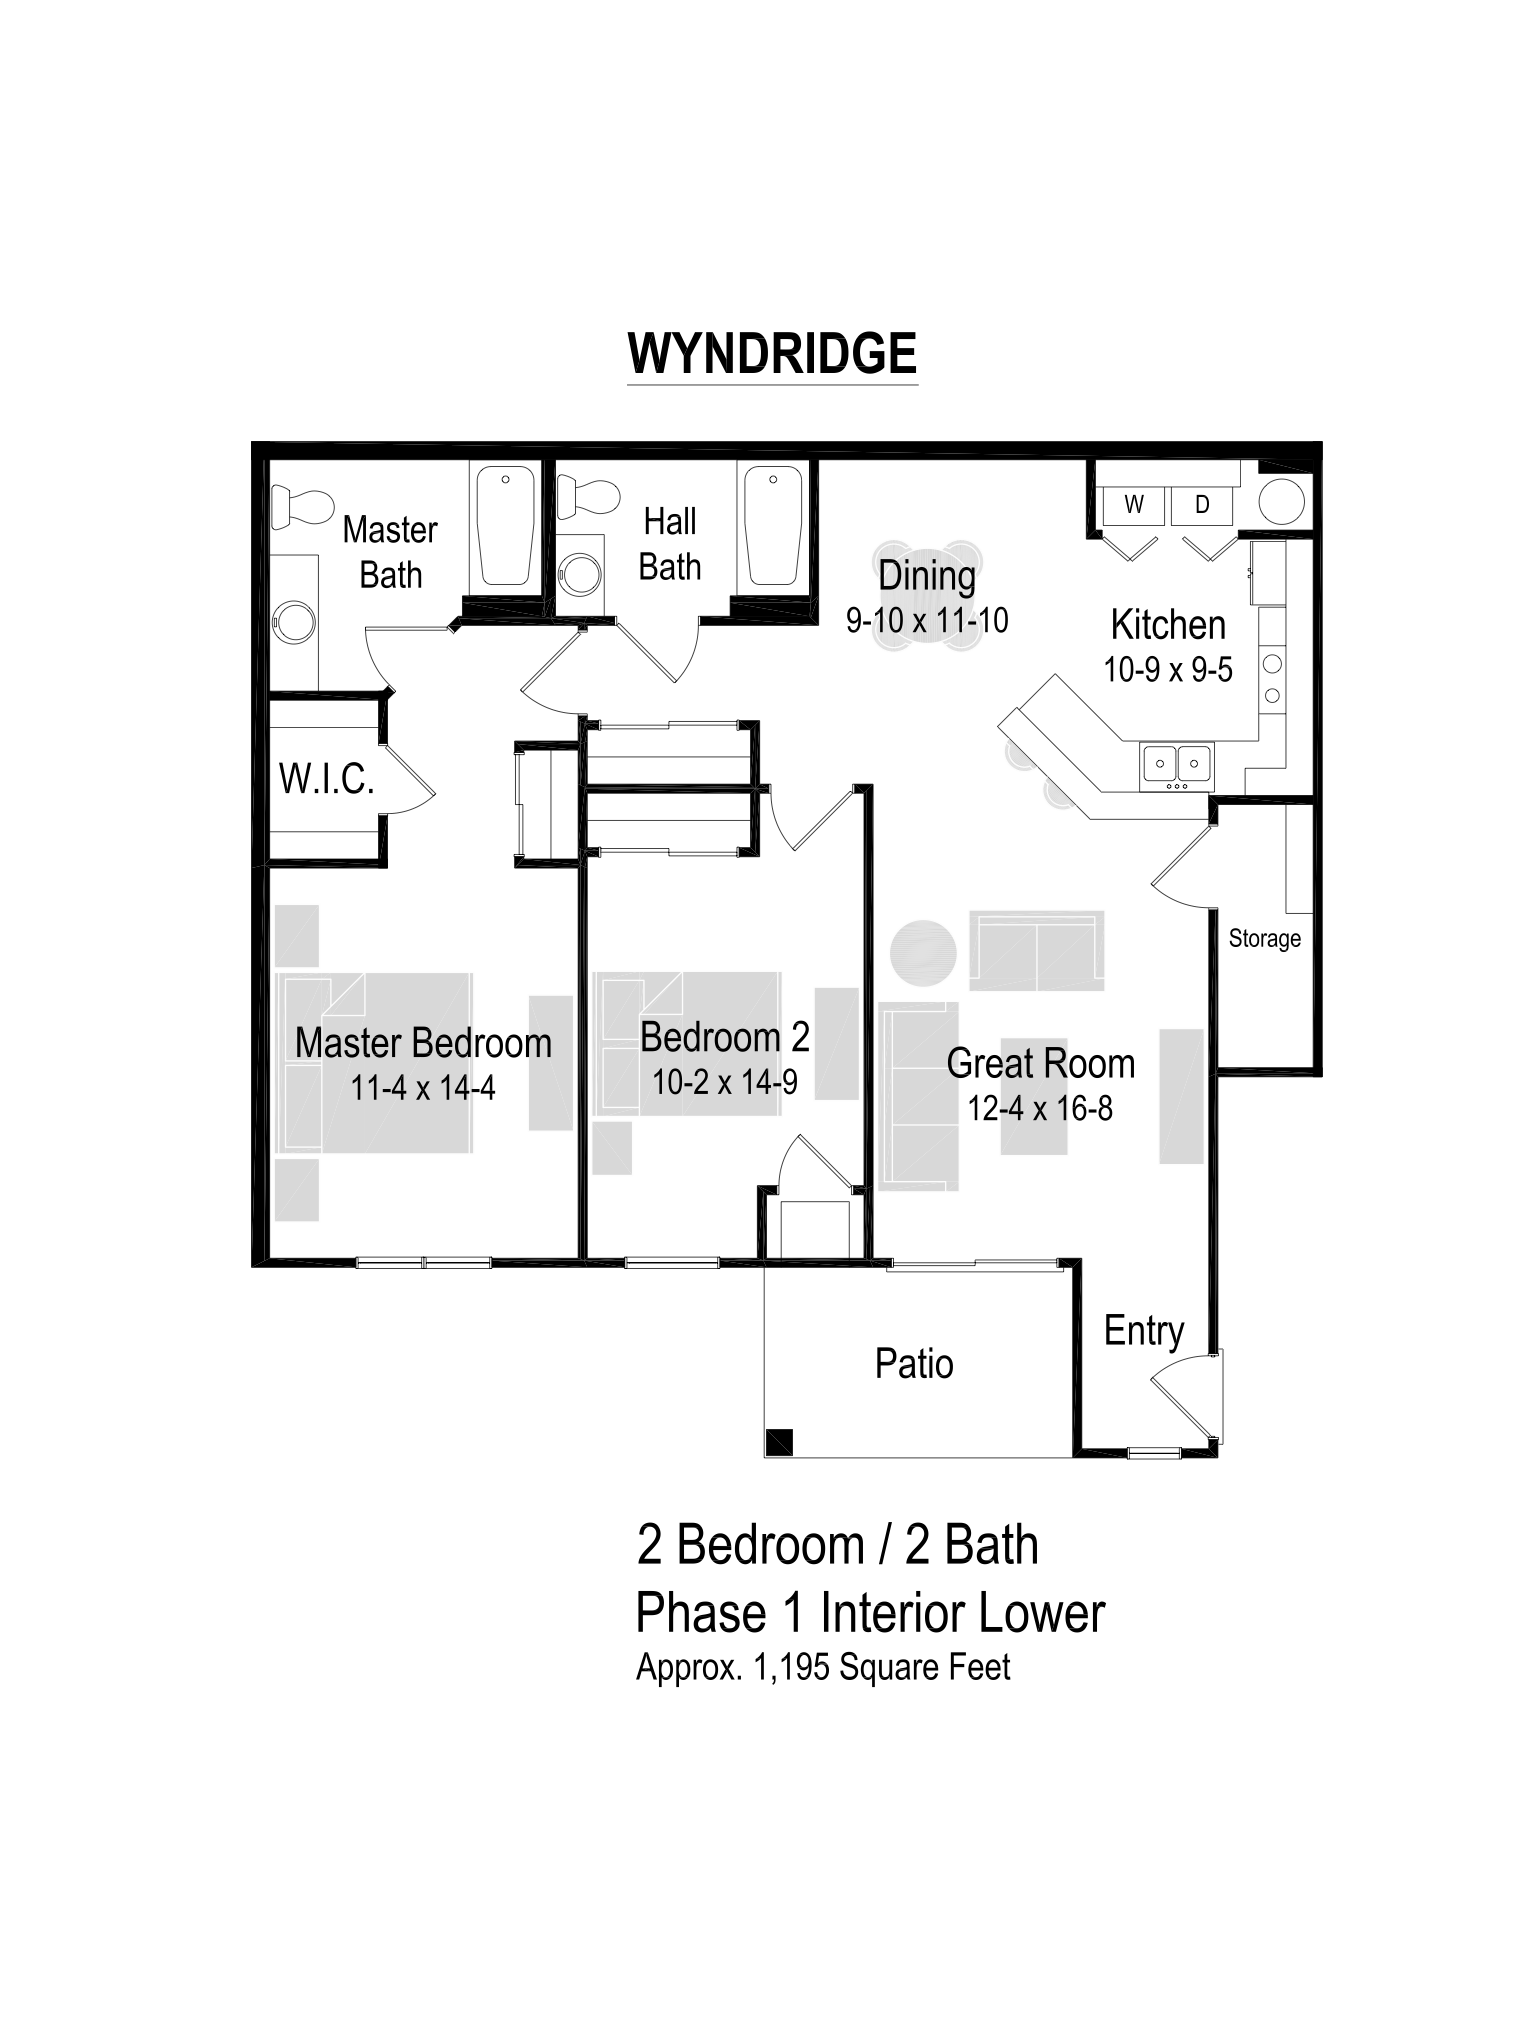 1195 Sq. Ft. Floor Plan